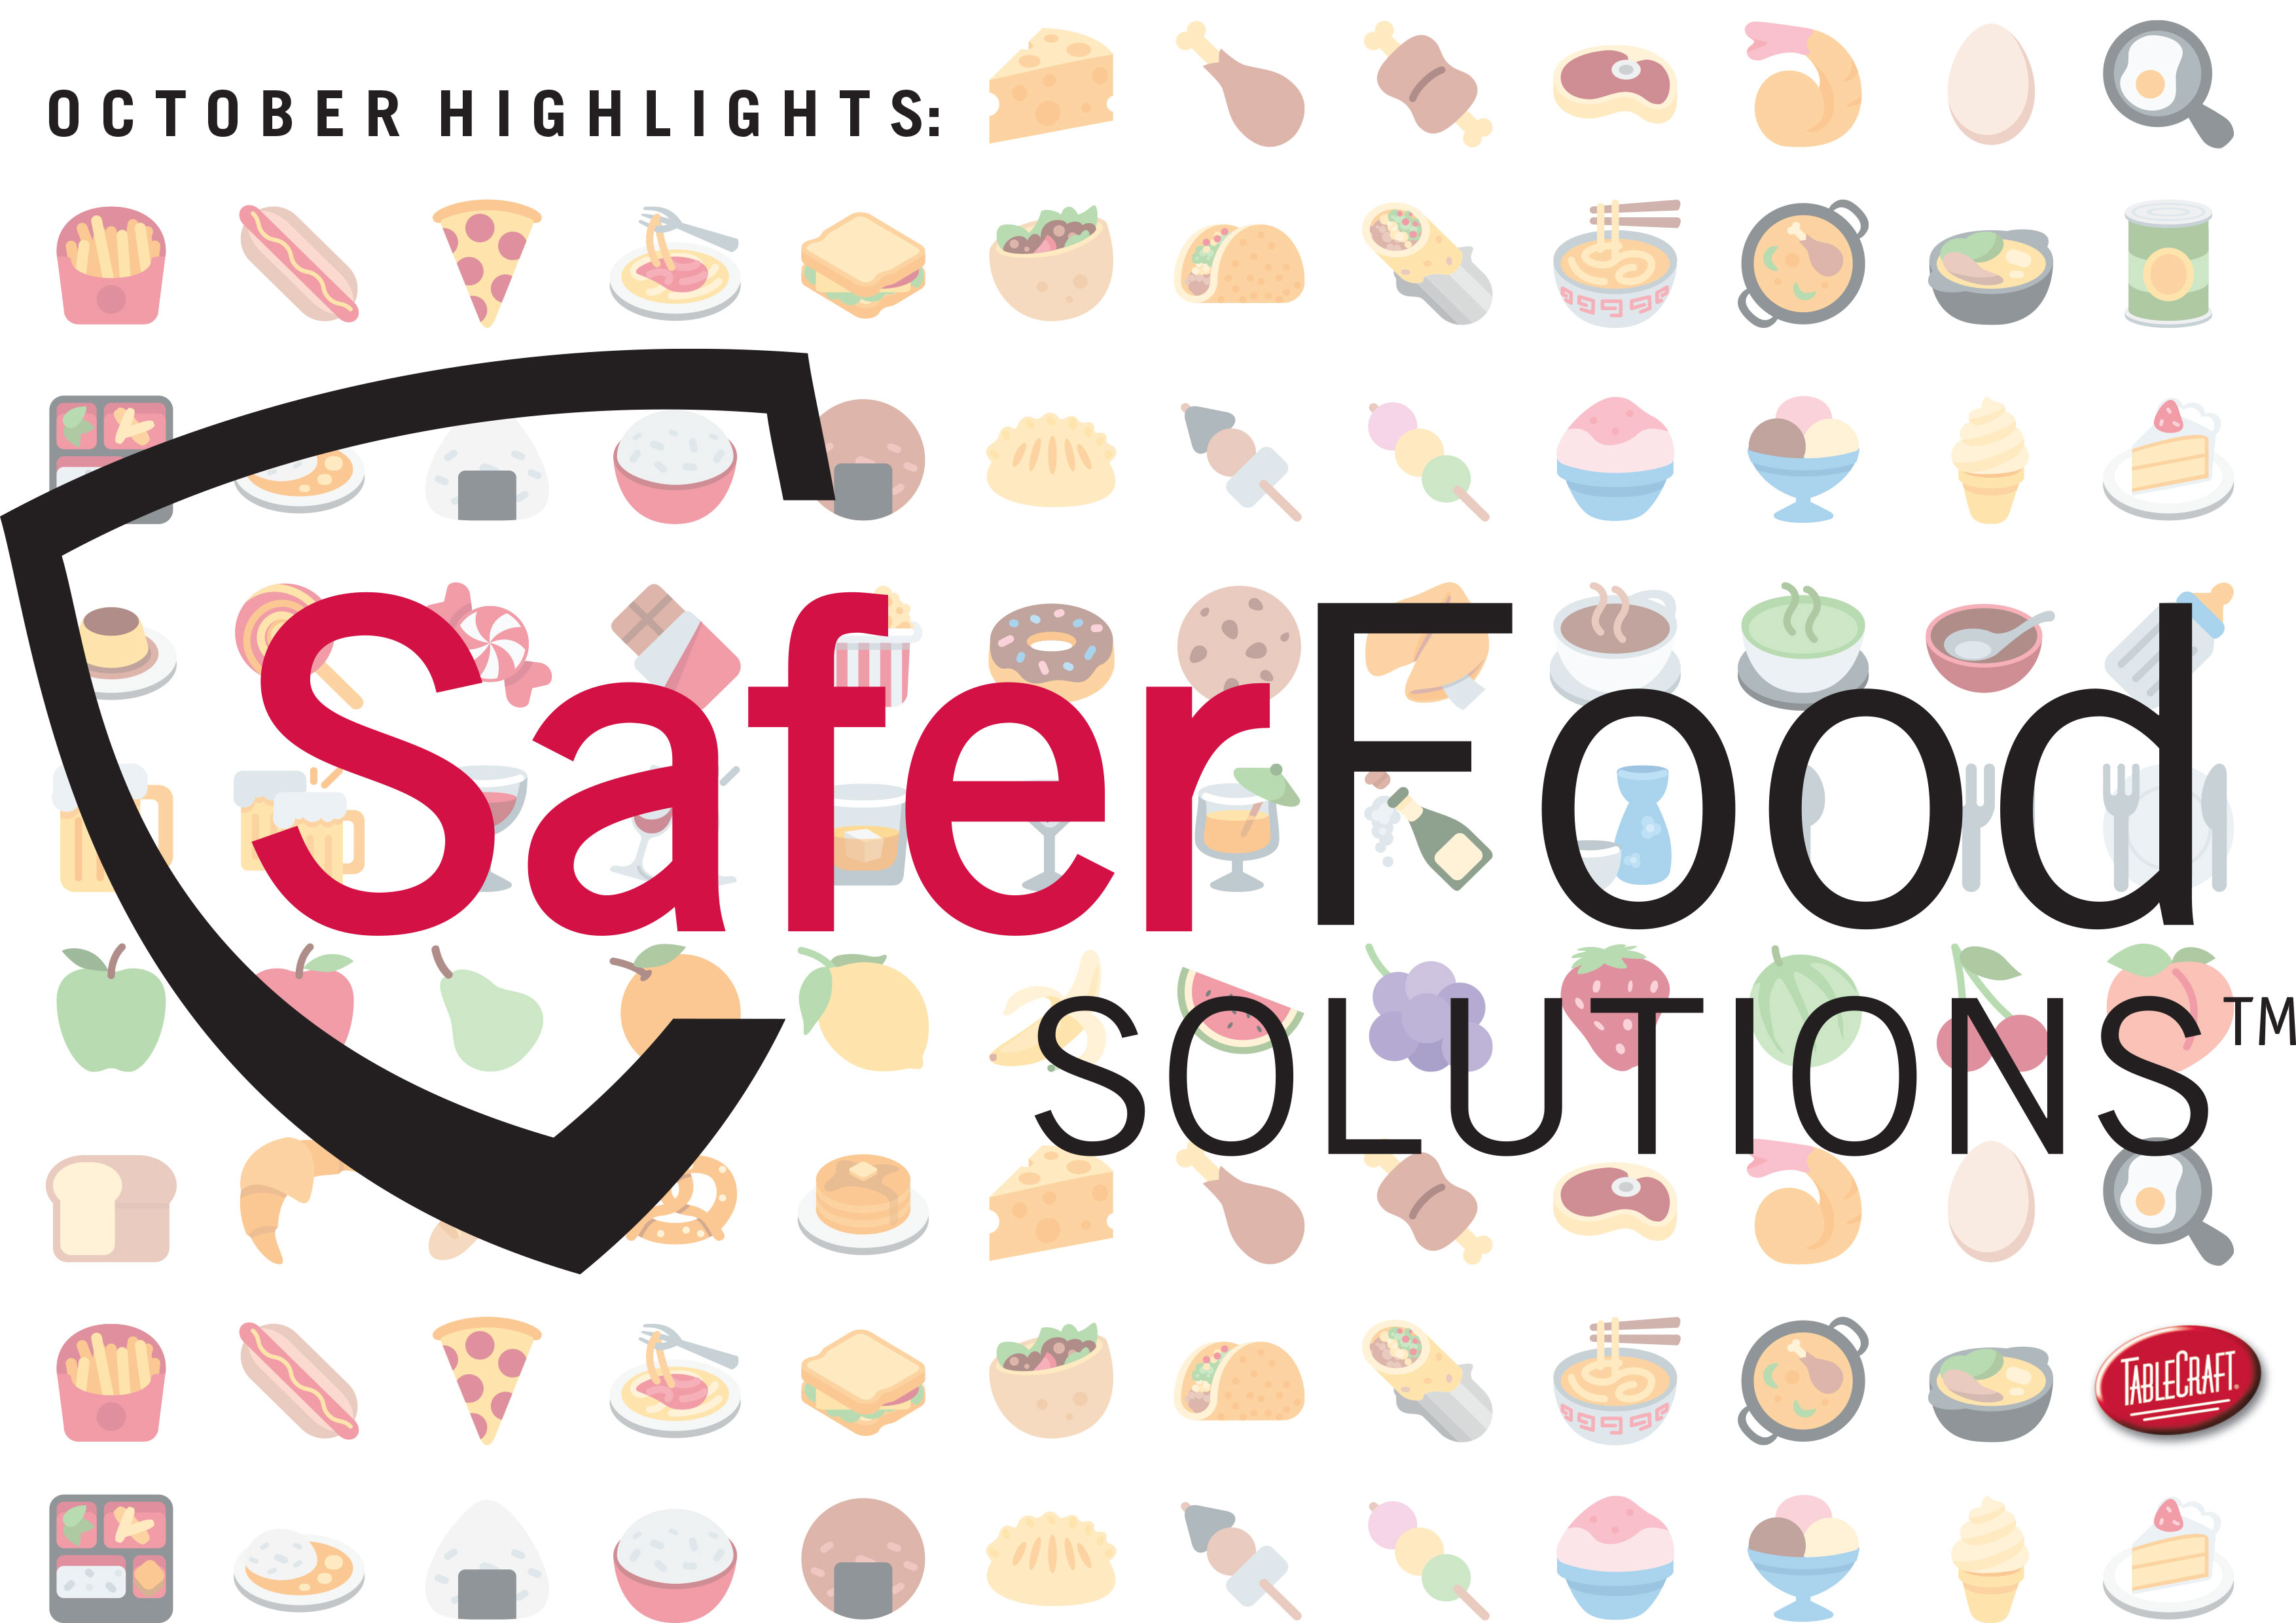 Promote Food Safety with SaferFood Solutions – October Look Book